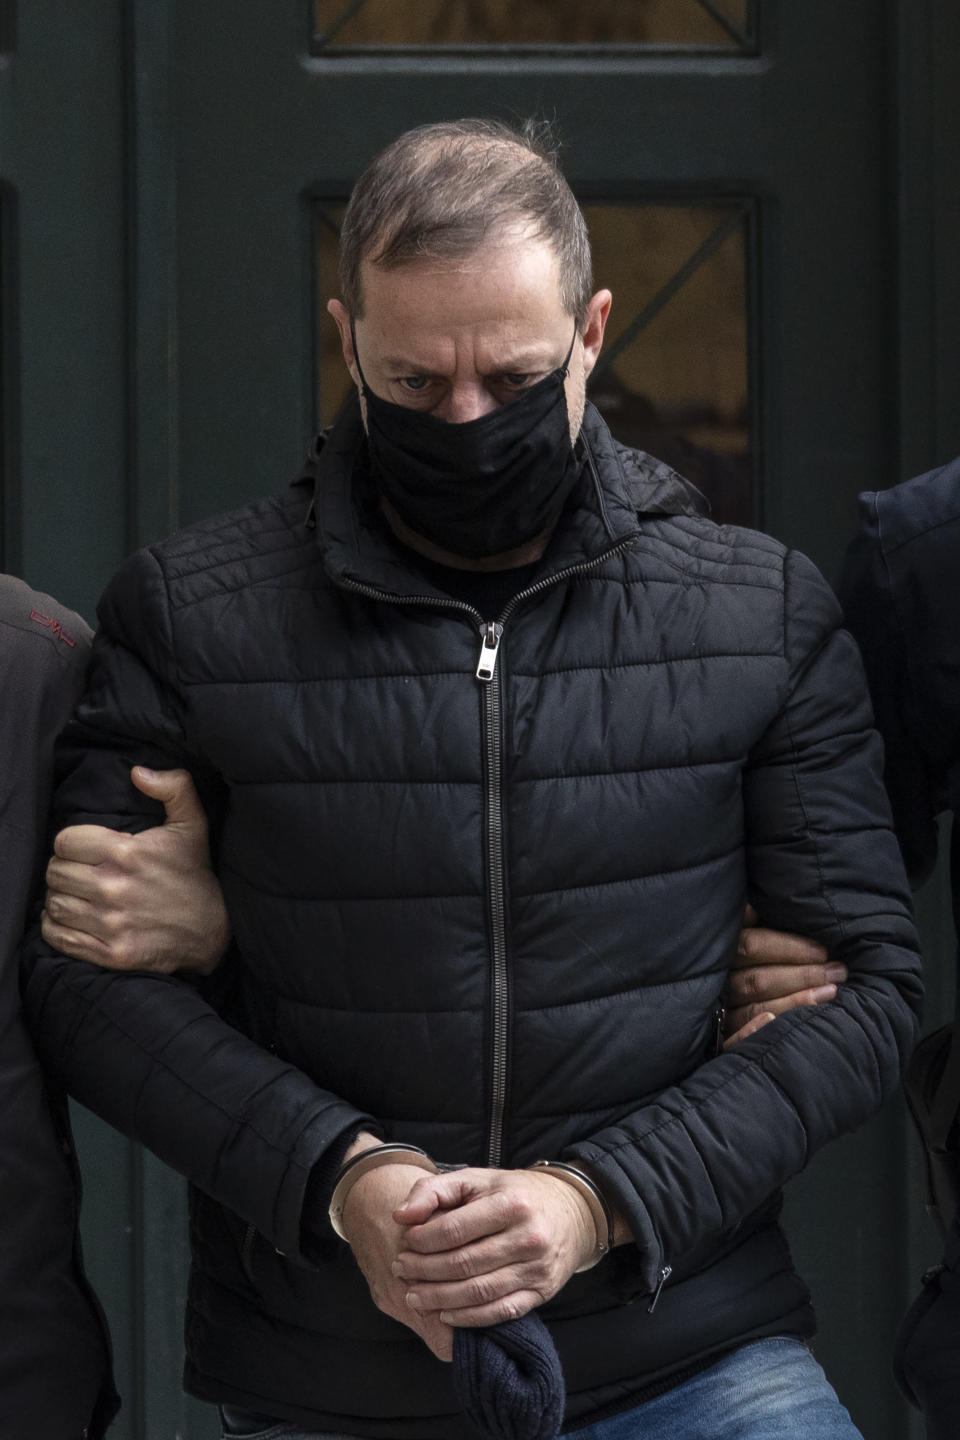 Handcuffed actor and director Dimitris Lignadis, leaves a magistrate's office in Athens, Sunday, Feb. 21, 2021. Lignadis, 56, the former artistic director of Greece's National Theatre, has been arrested on rape charges, police say. (AP Photo/Yorgos Karahalis)